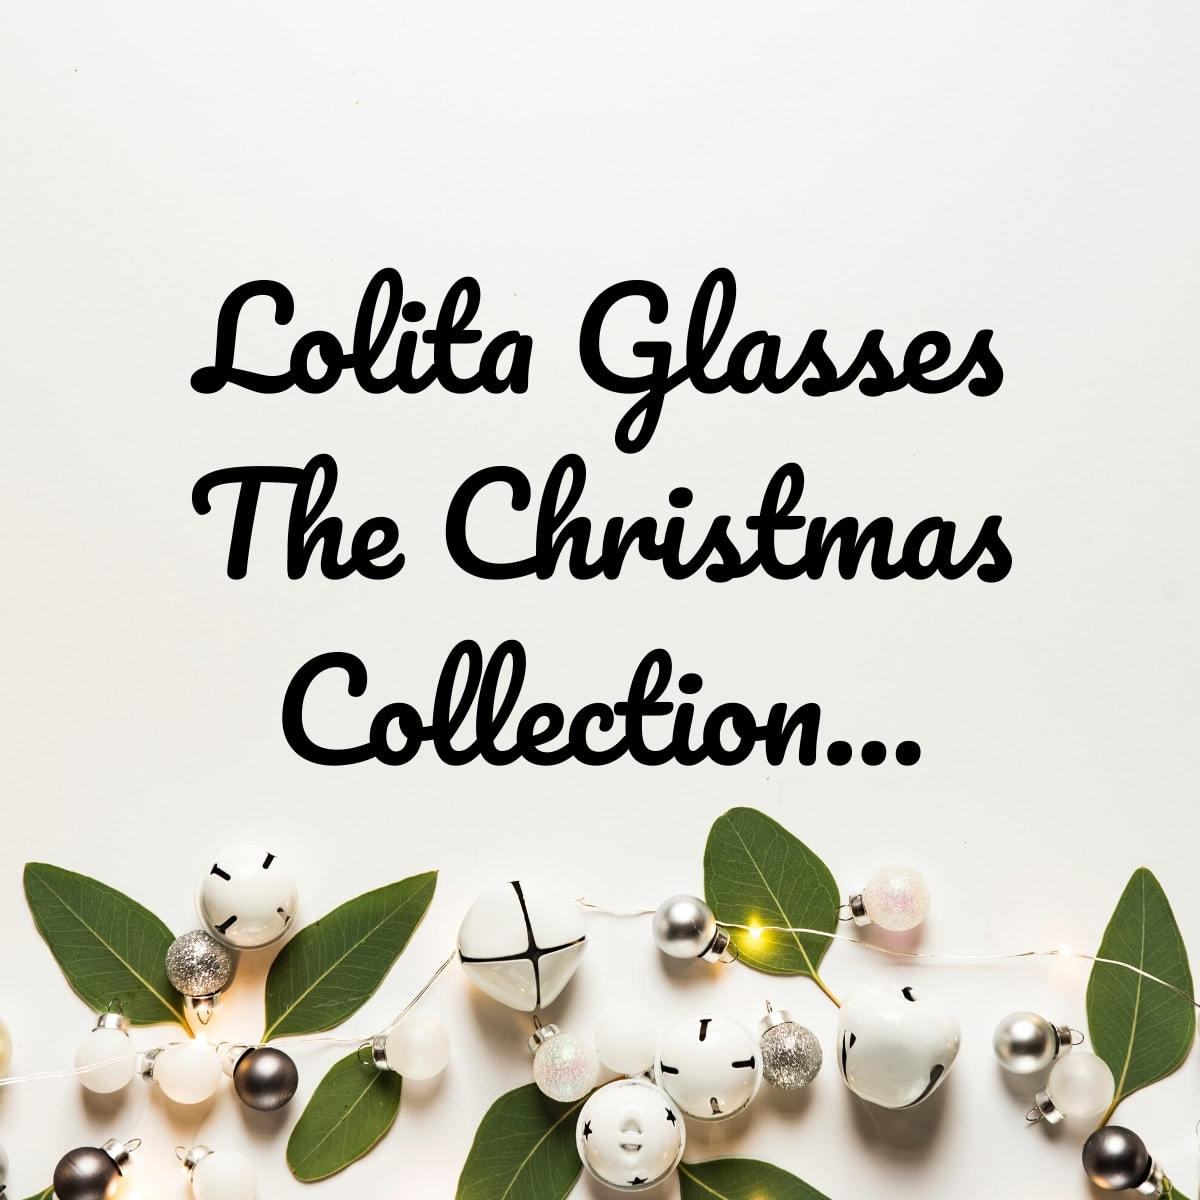 Lolita Glasses: The Christmas Collection (AD GIFTED)